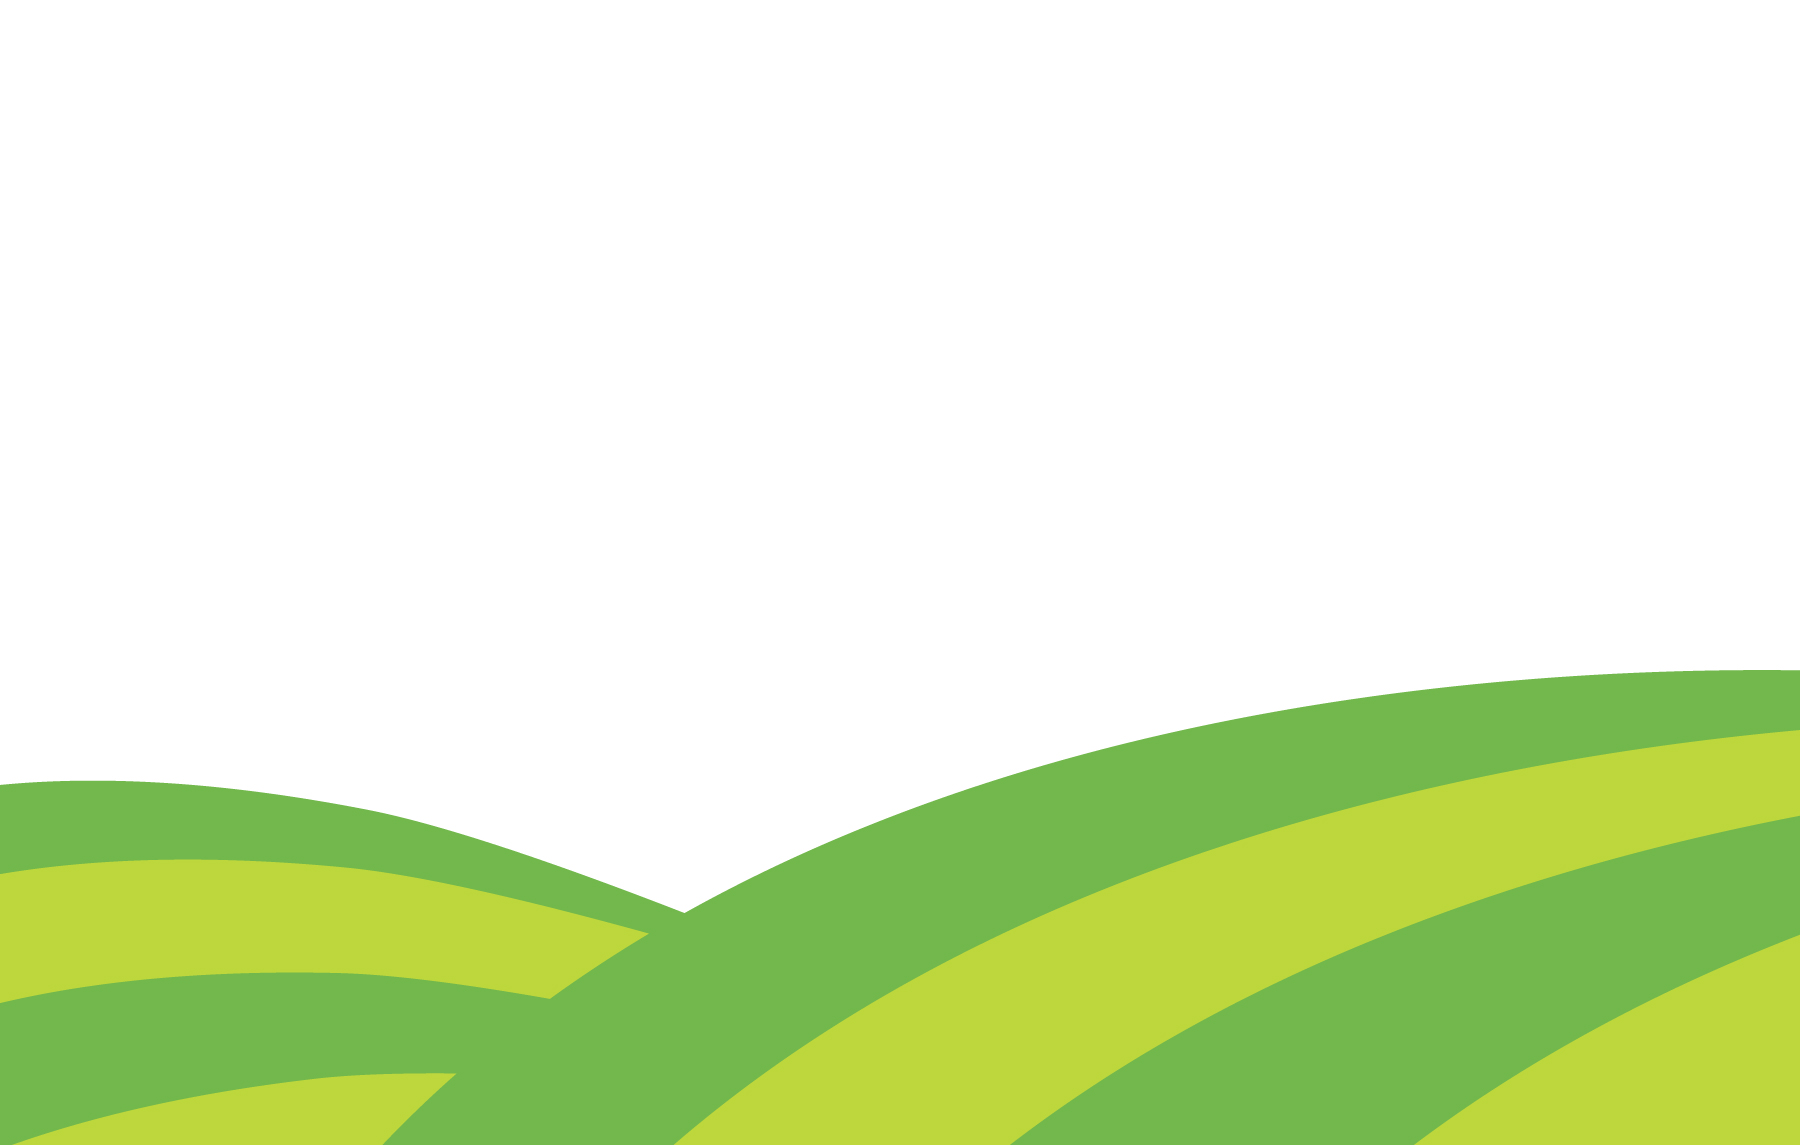 Green Hill Clipart - Clipart Suggest